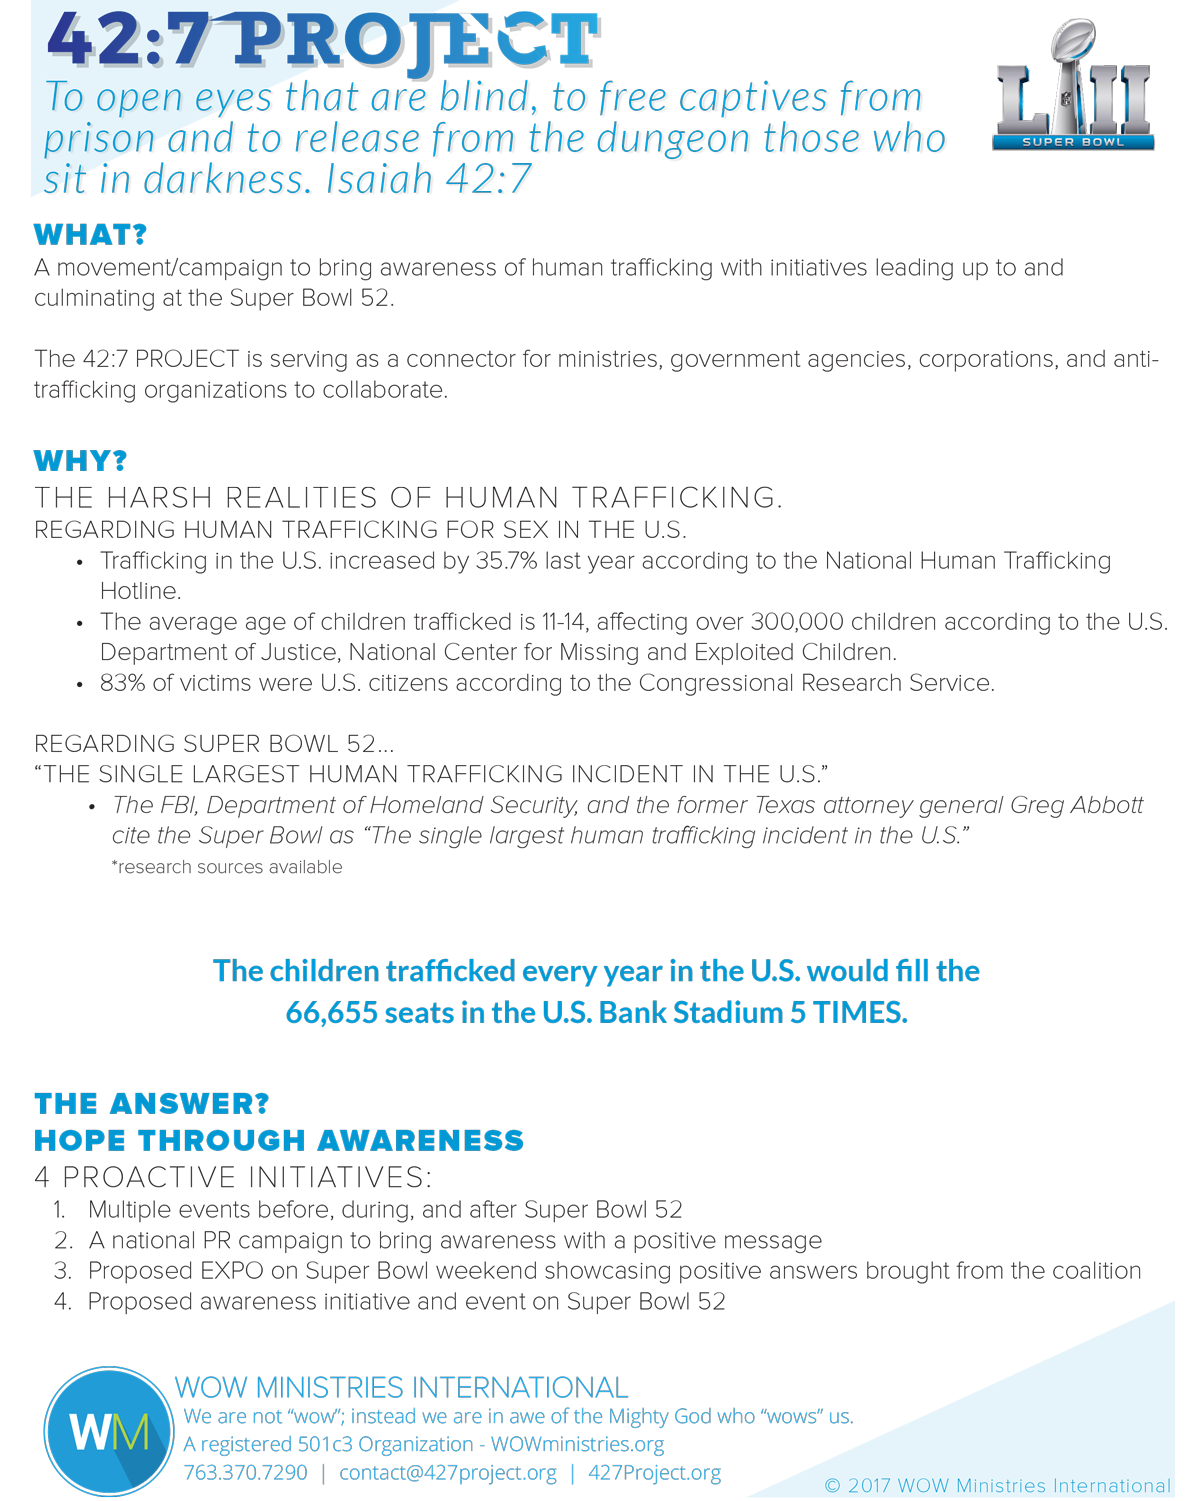 427-Project-Overview-Christian-General-Public-FullSheets-1.png